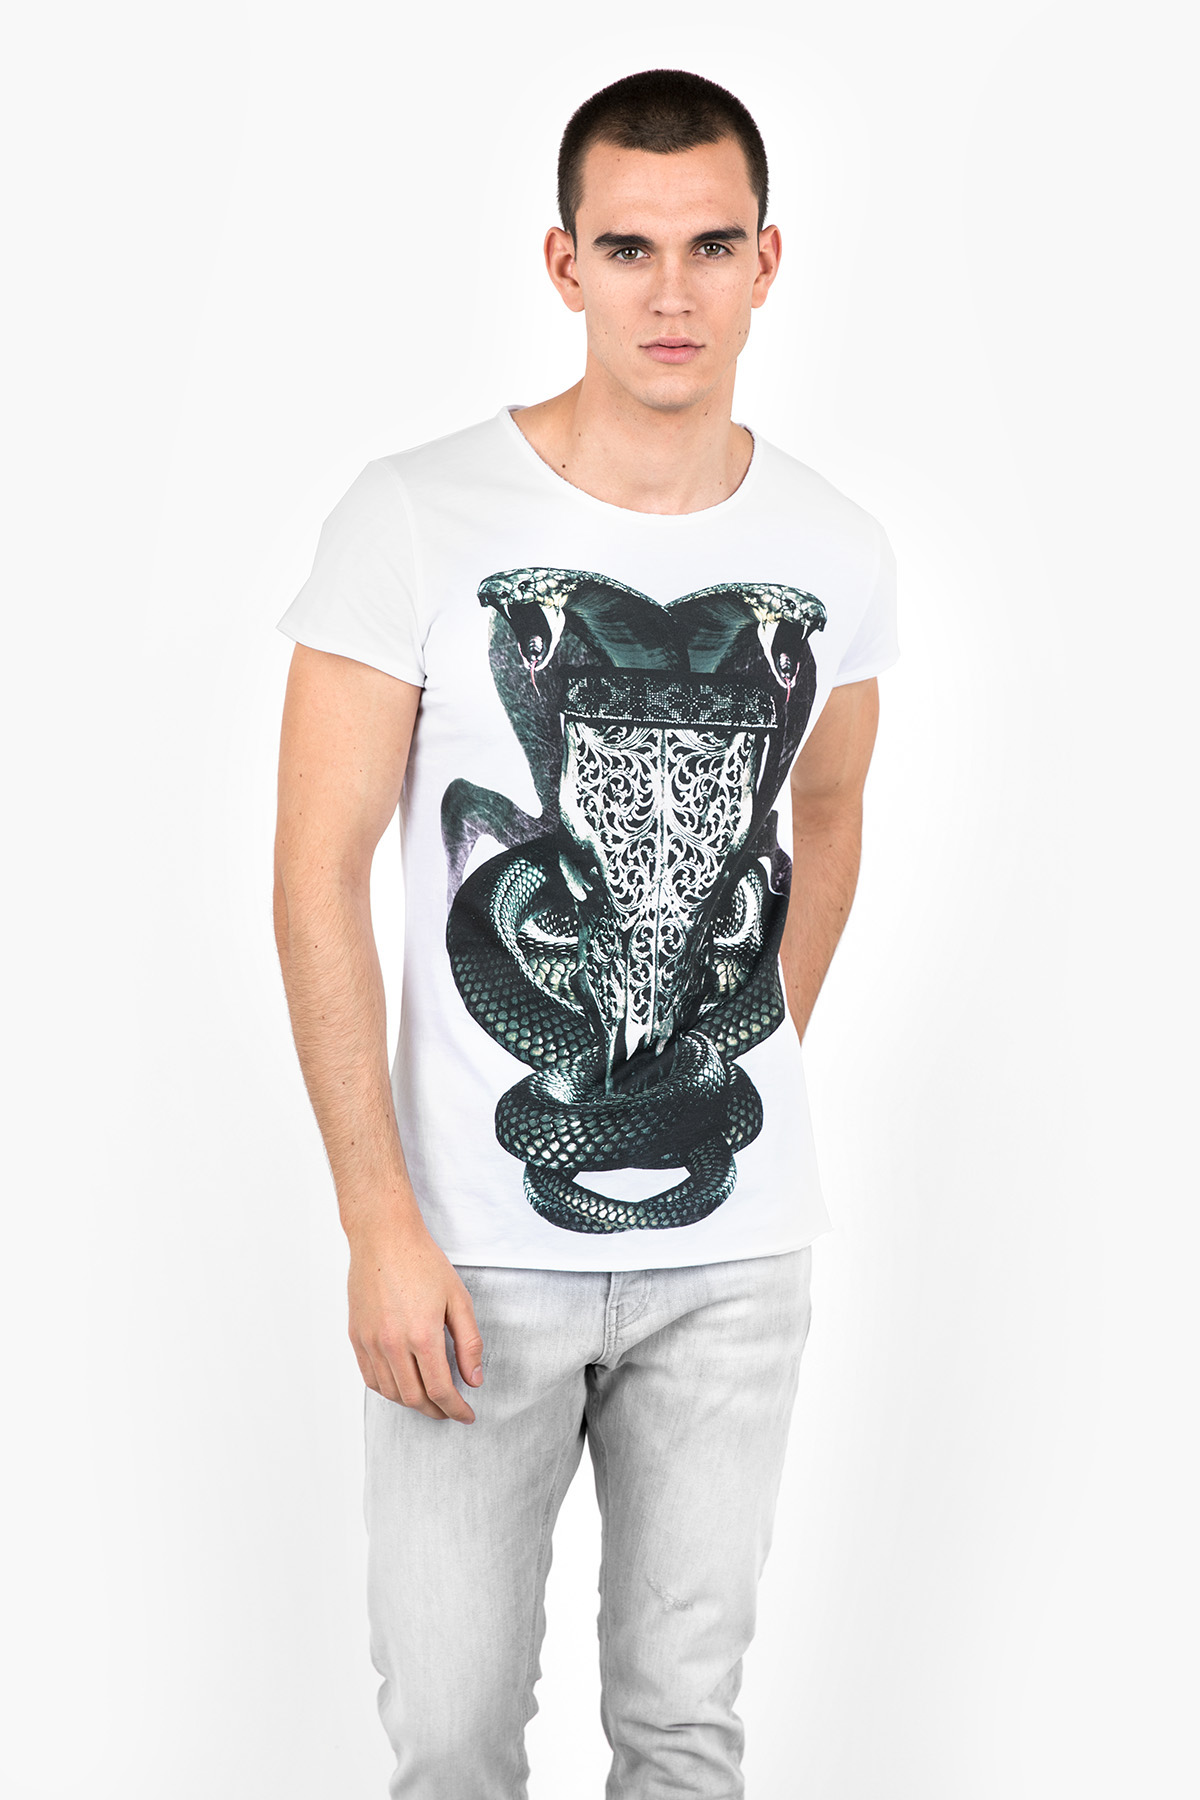 Clearance Visit New T-Shirt Snake Bull MSN white Tigha Authentic Cheap Price Largest Supplier Sale Online Perfect For Sale The Cheapest Cheap Price u0yc285EB